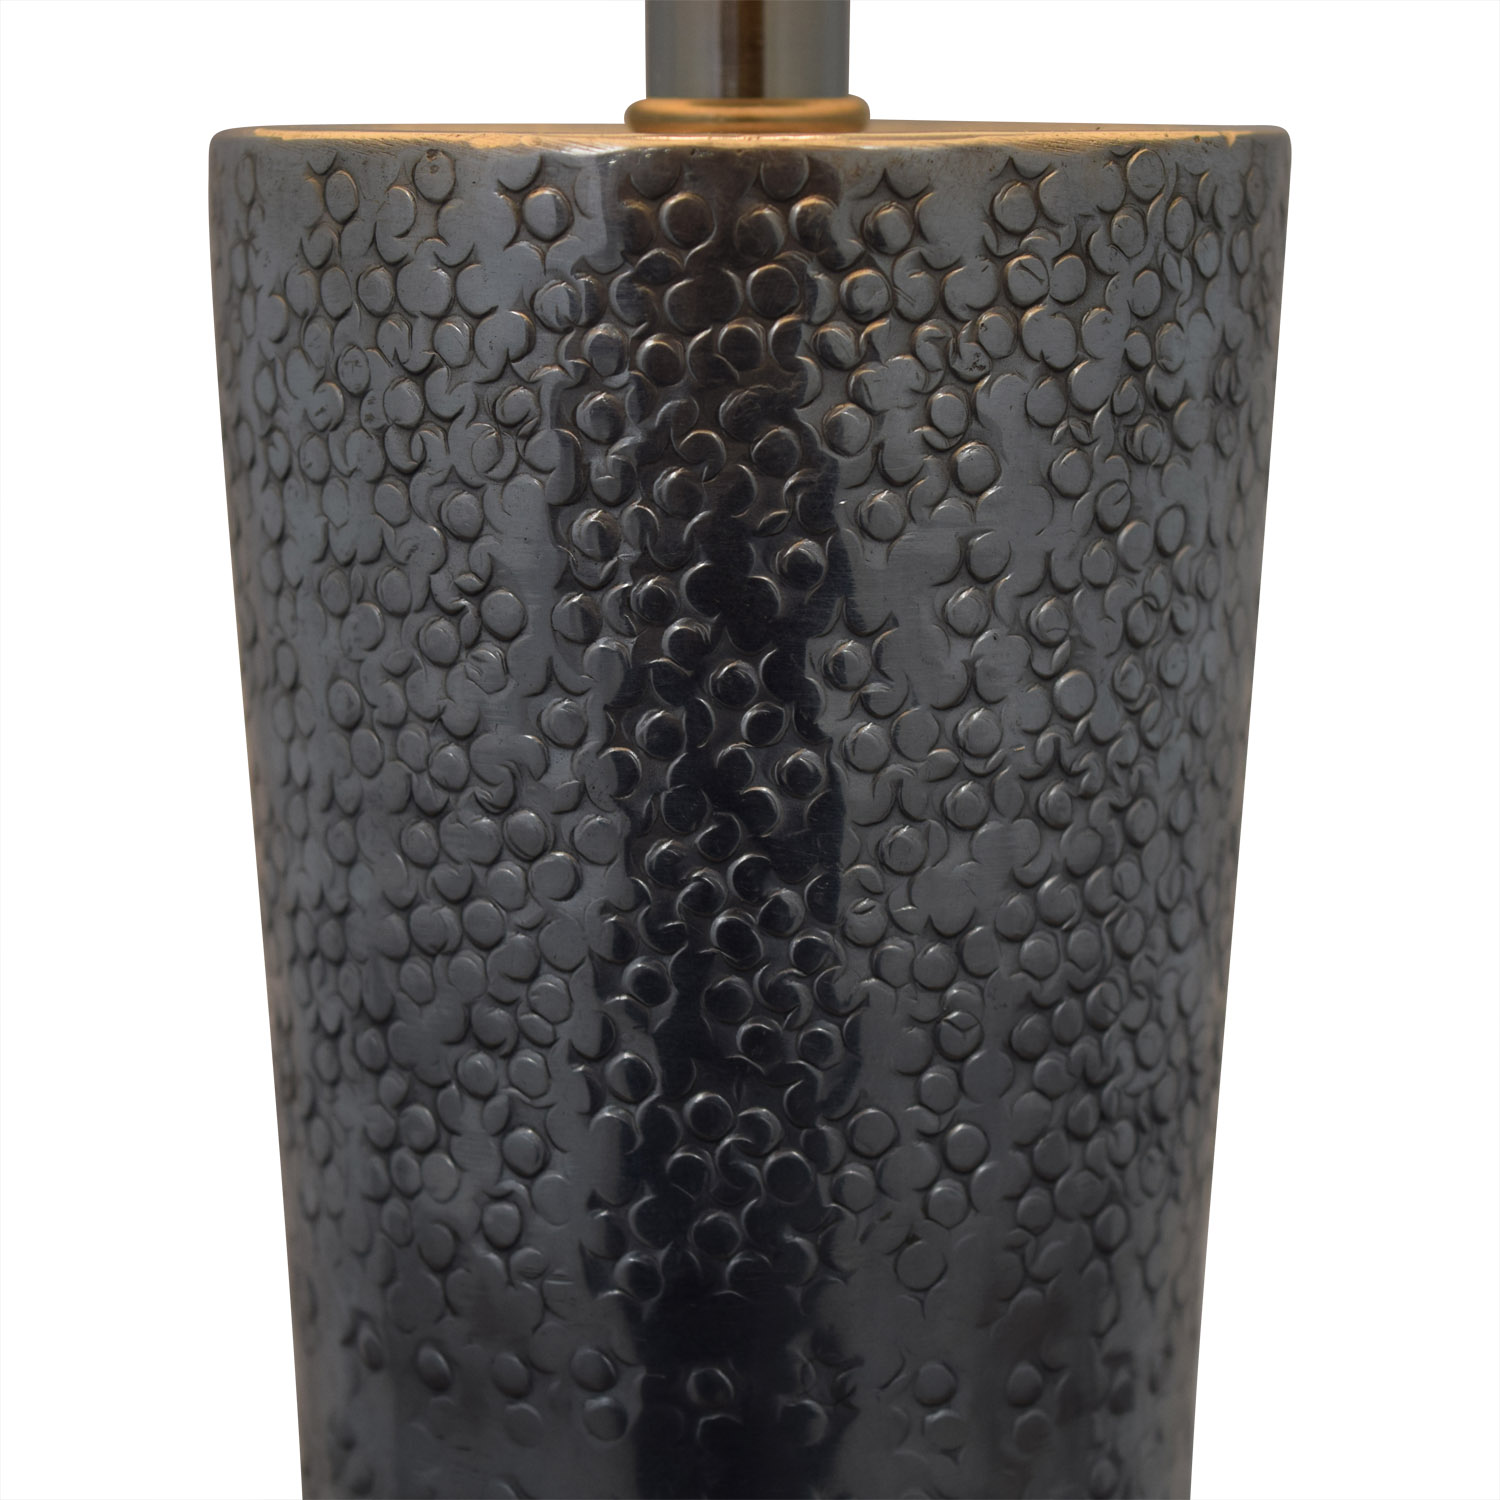 Embossed Metal Lamp / Decor